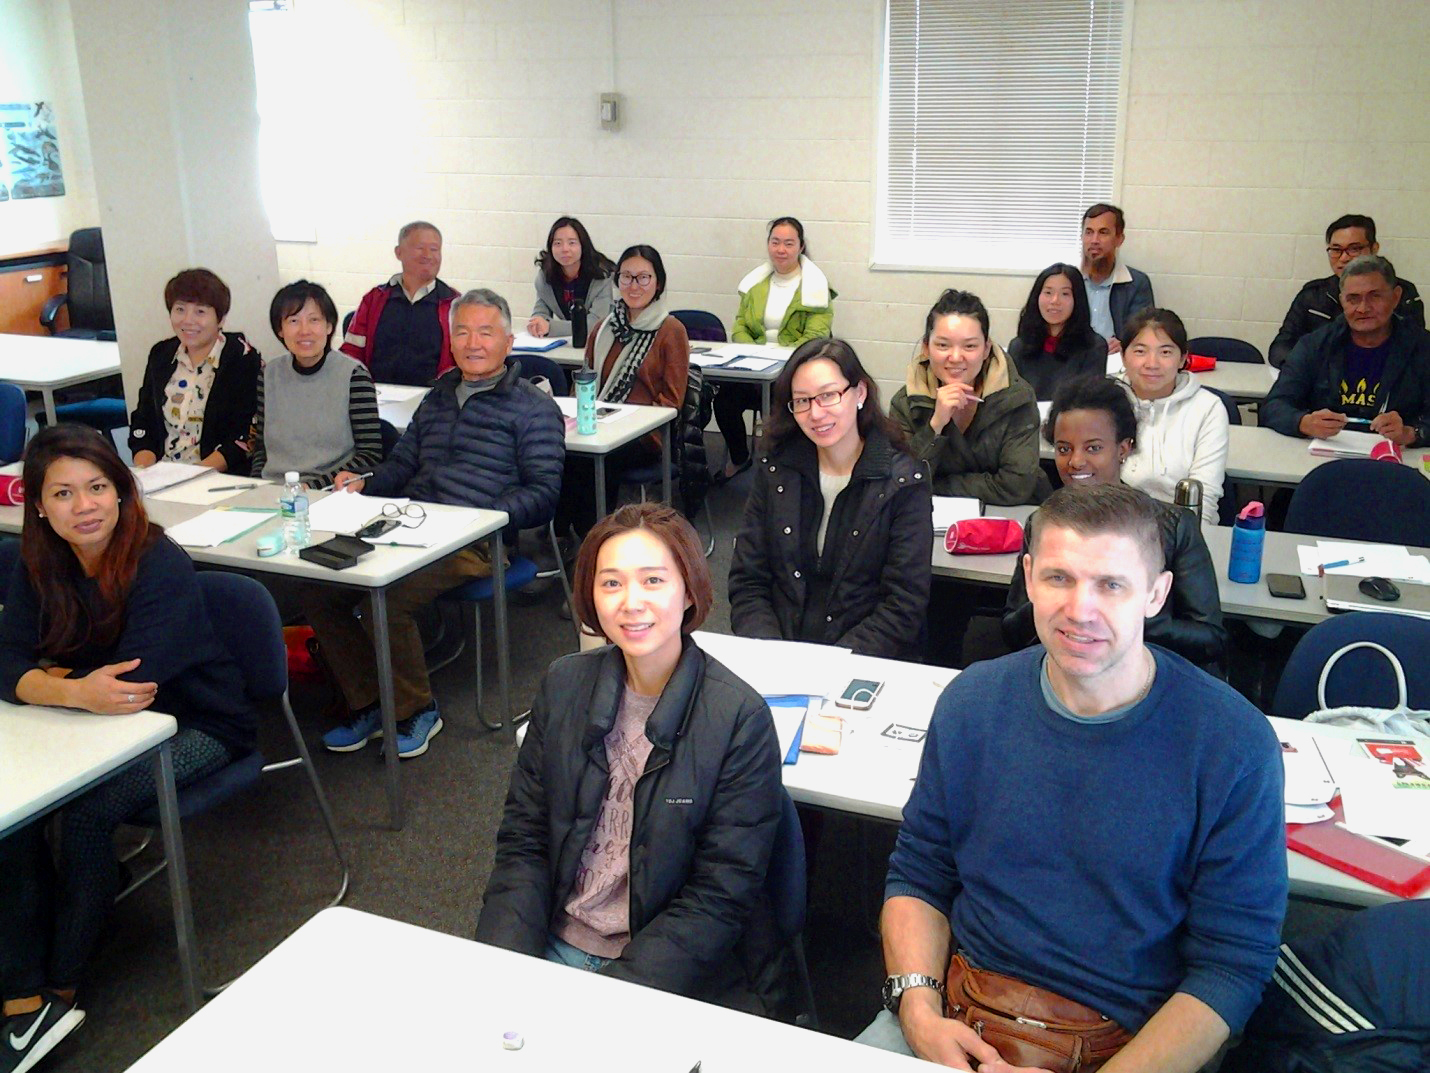 DynaSpeak New Lynn - Level 4 Academic Course